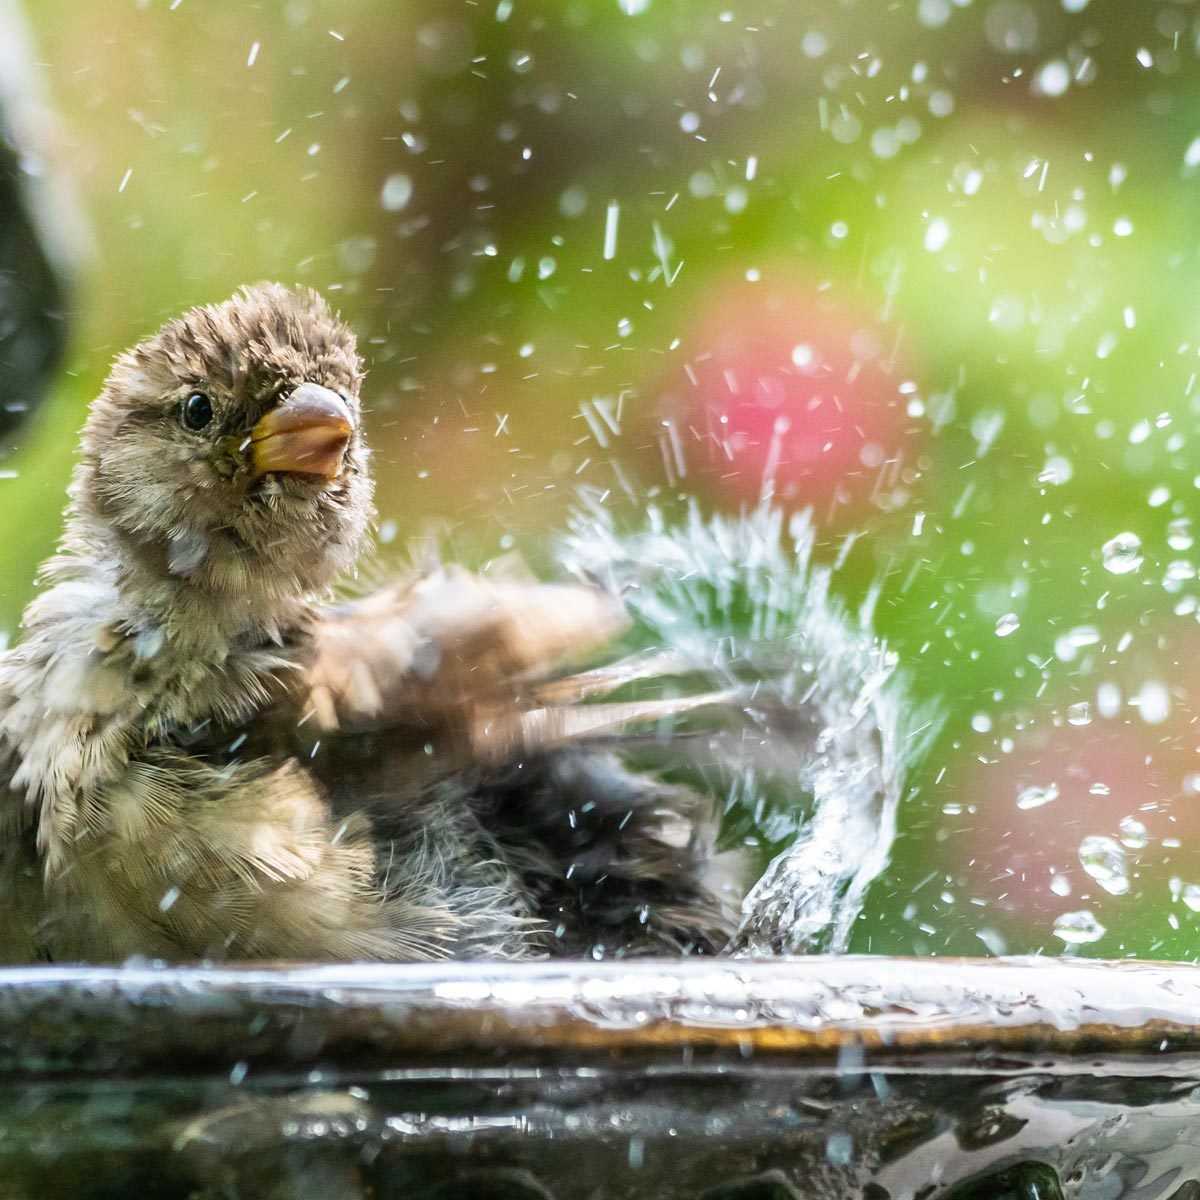 Splashing Sparrow at Birdbath